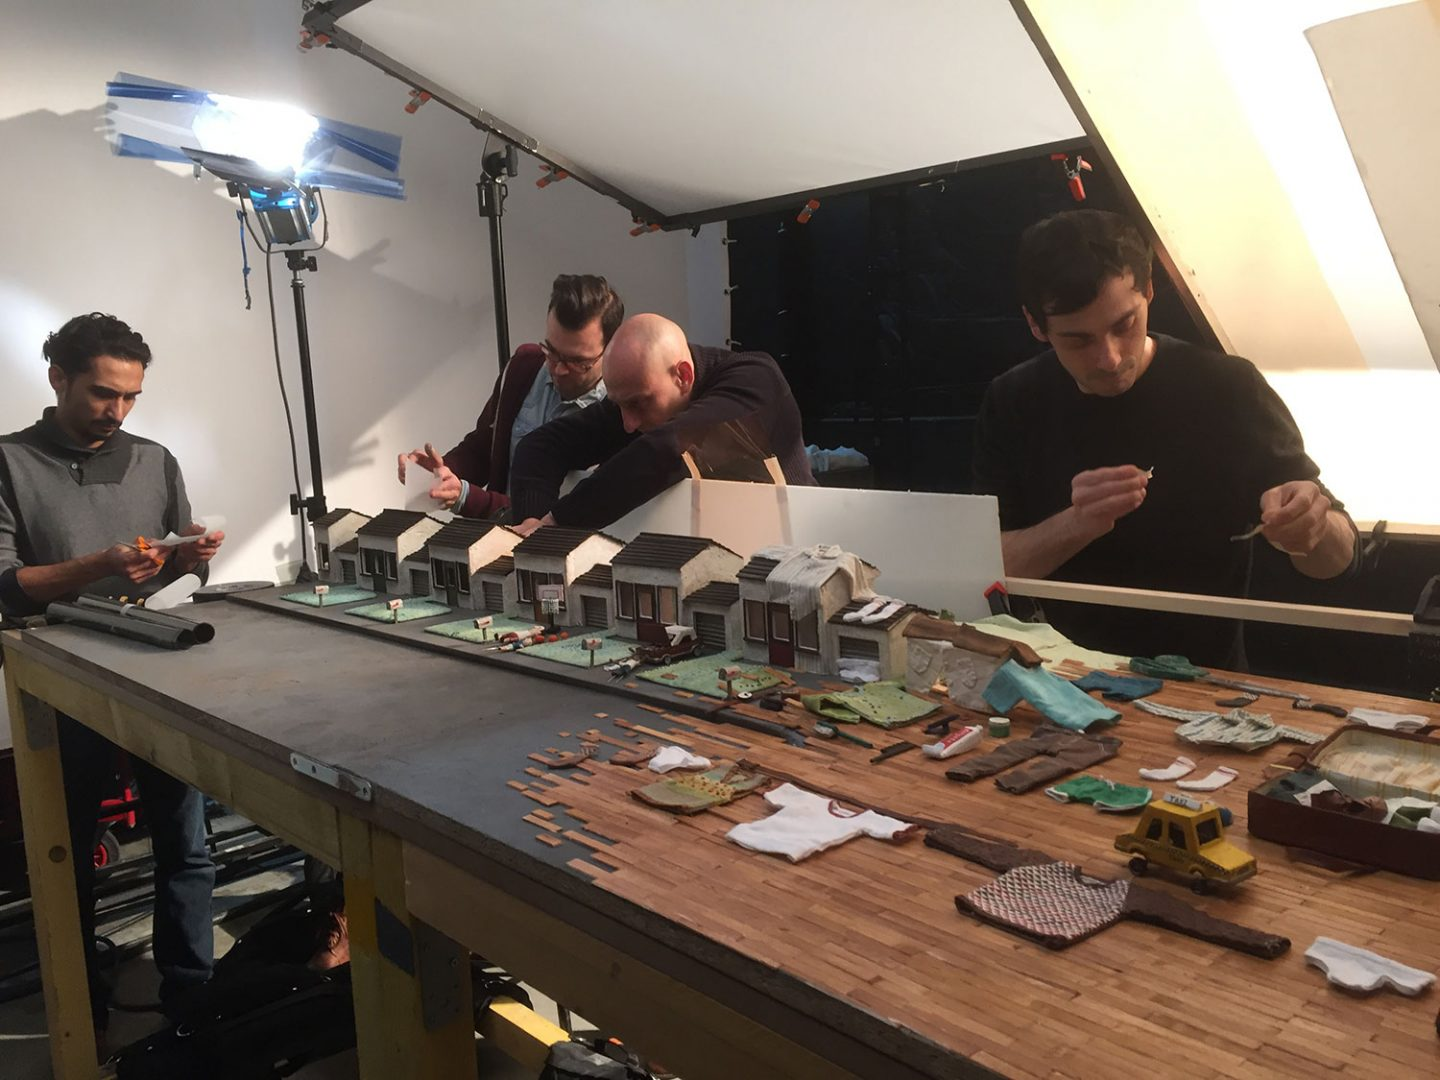 One of the largest sets - the pan of suburb - being lit. The team is using gels and gaffer tape to control small lighting details. From left: Walid Païenda (production assistant). Simon Gesrel (cinematographer), Jean-Louis Padis (co-producer), and Max Porter (co-director).